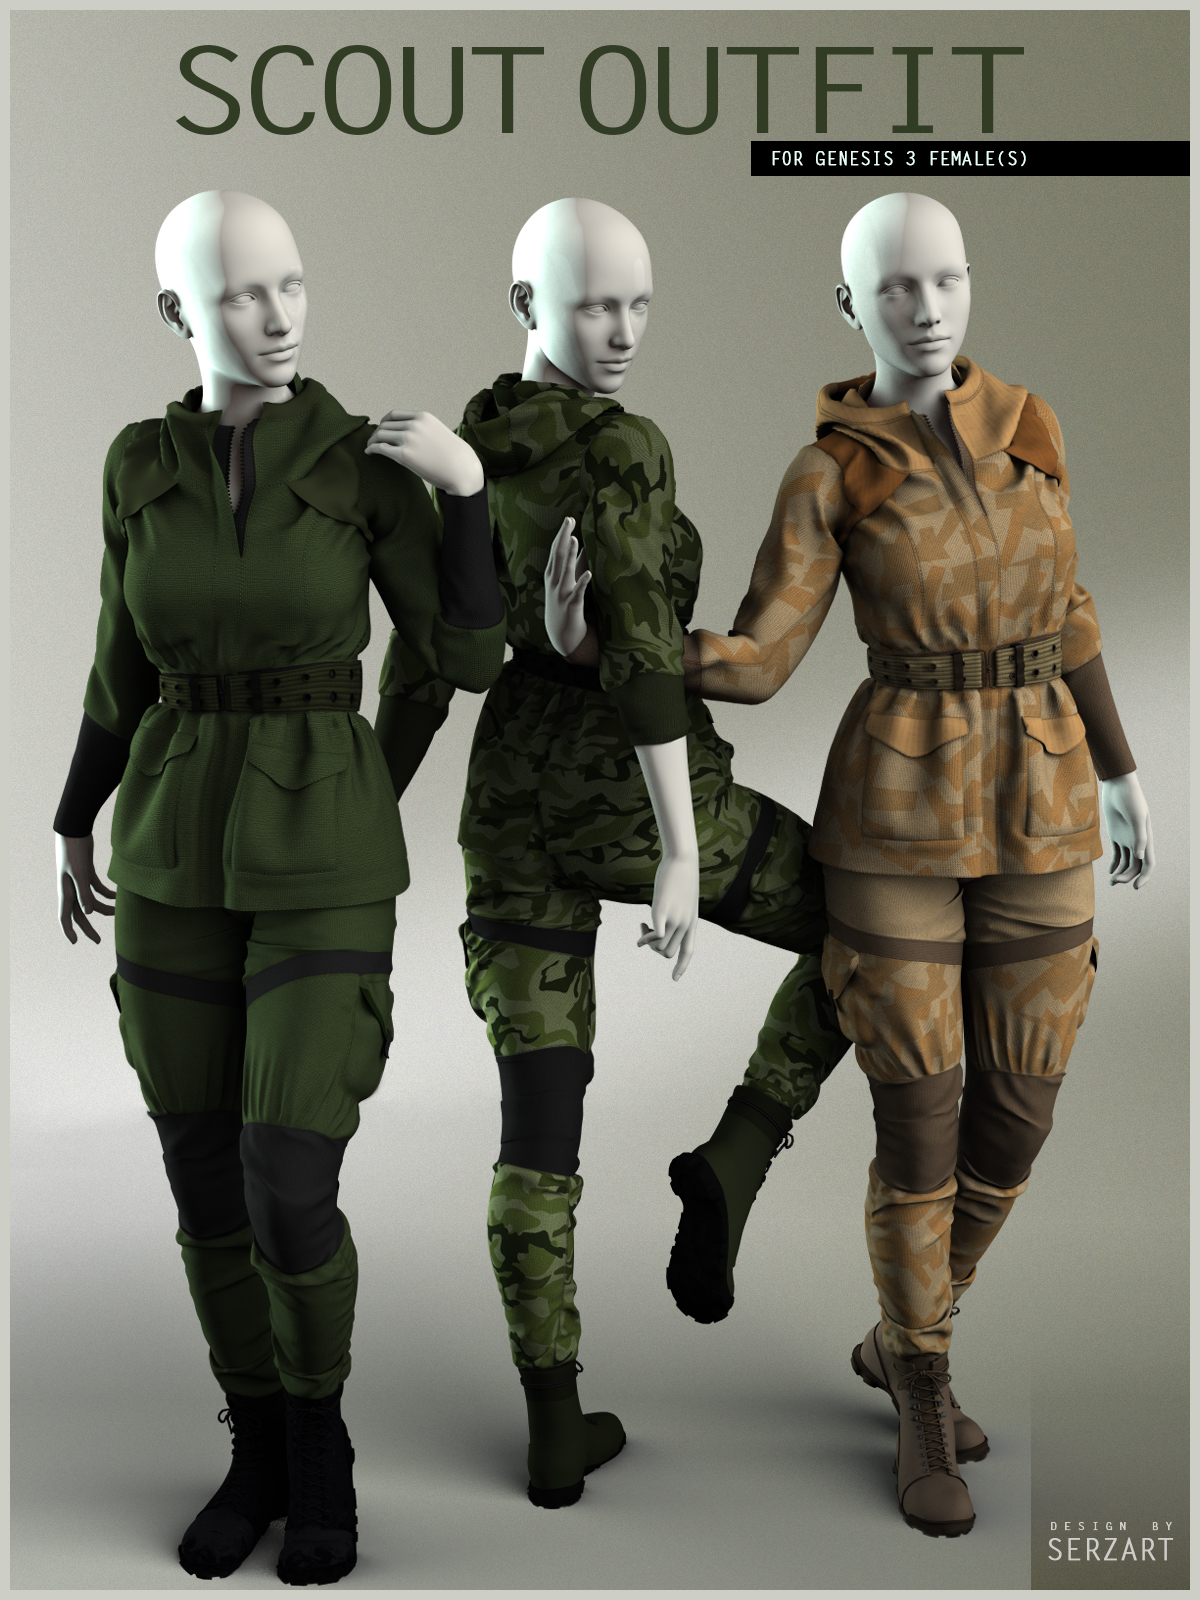 Scout Outfit for Genesis 3 Female